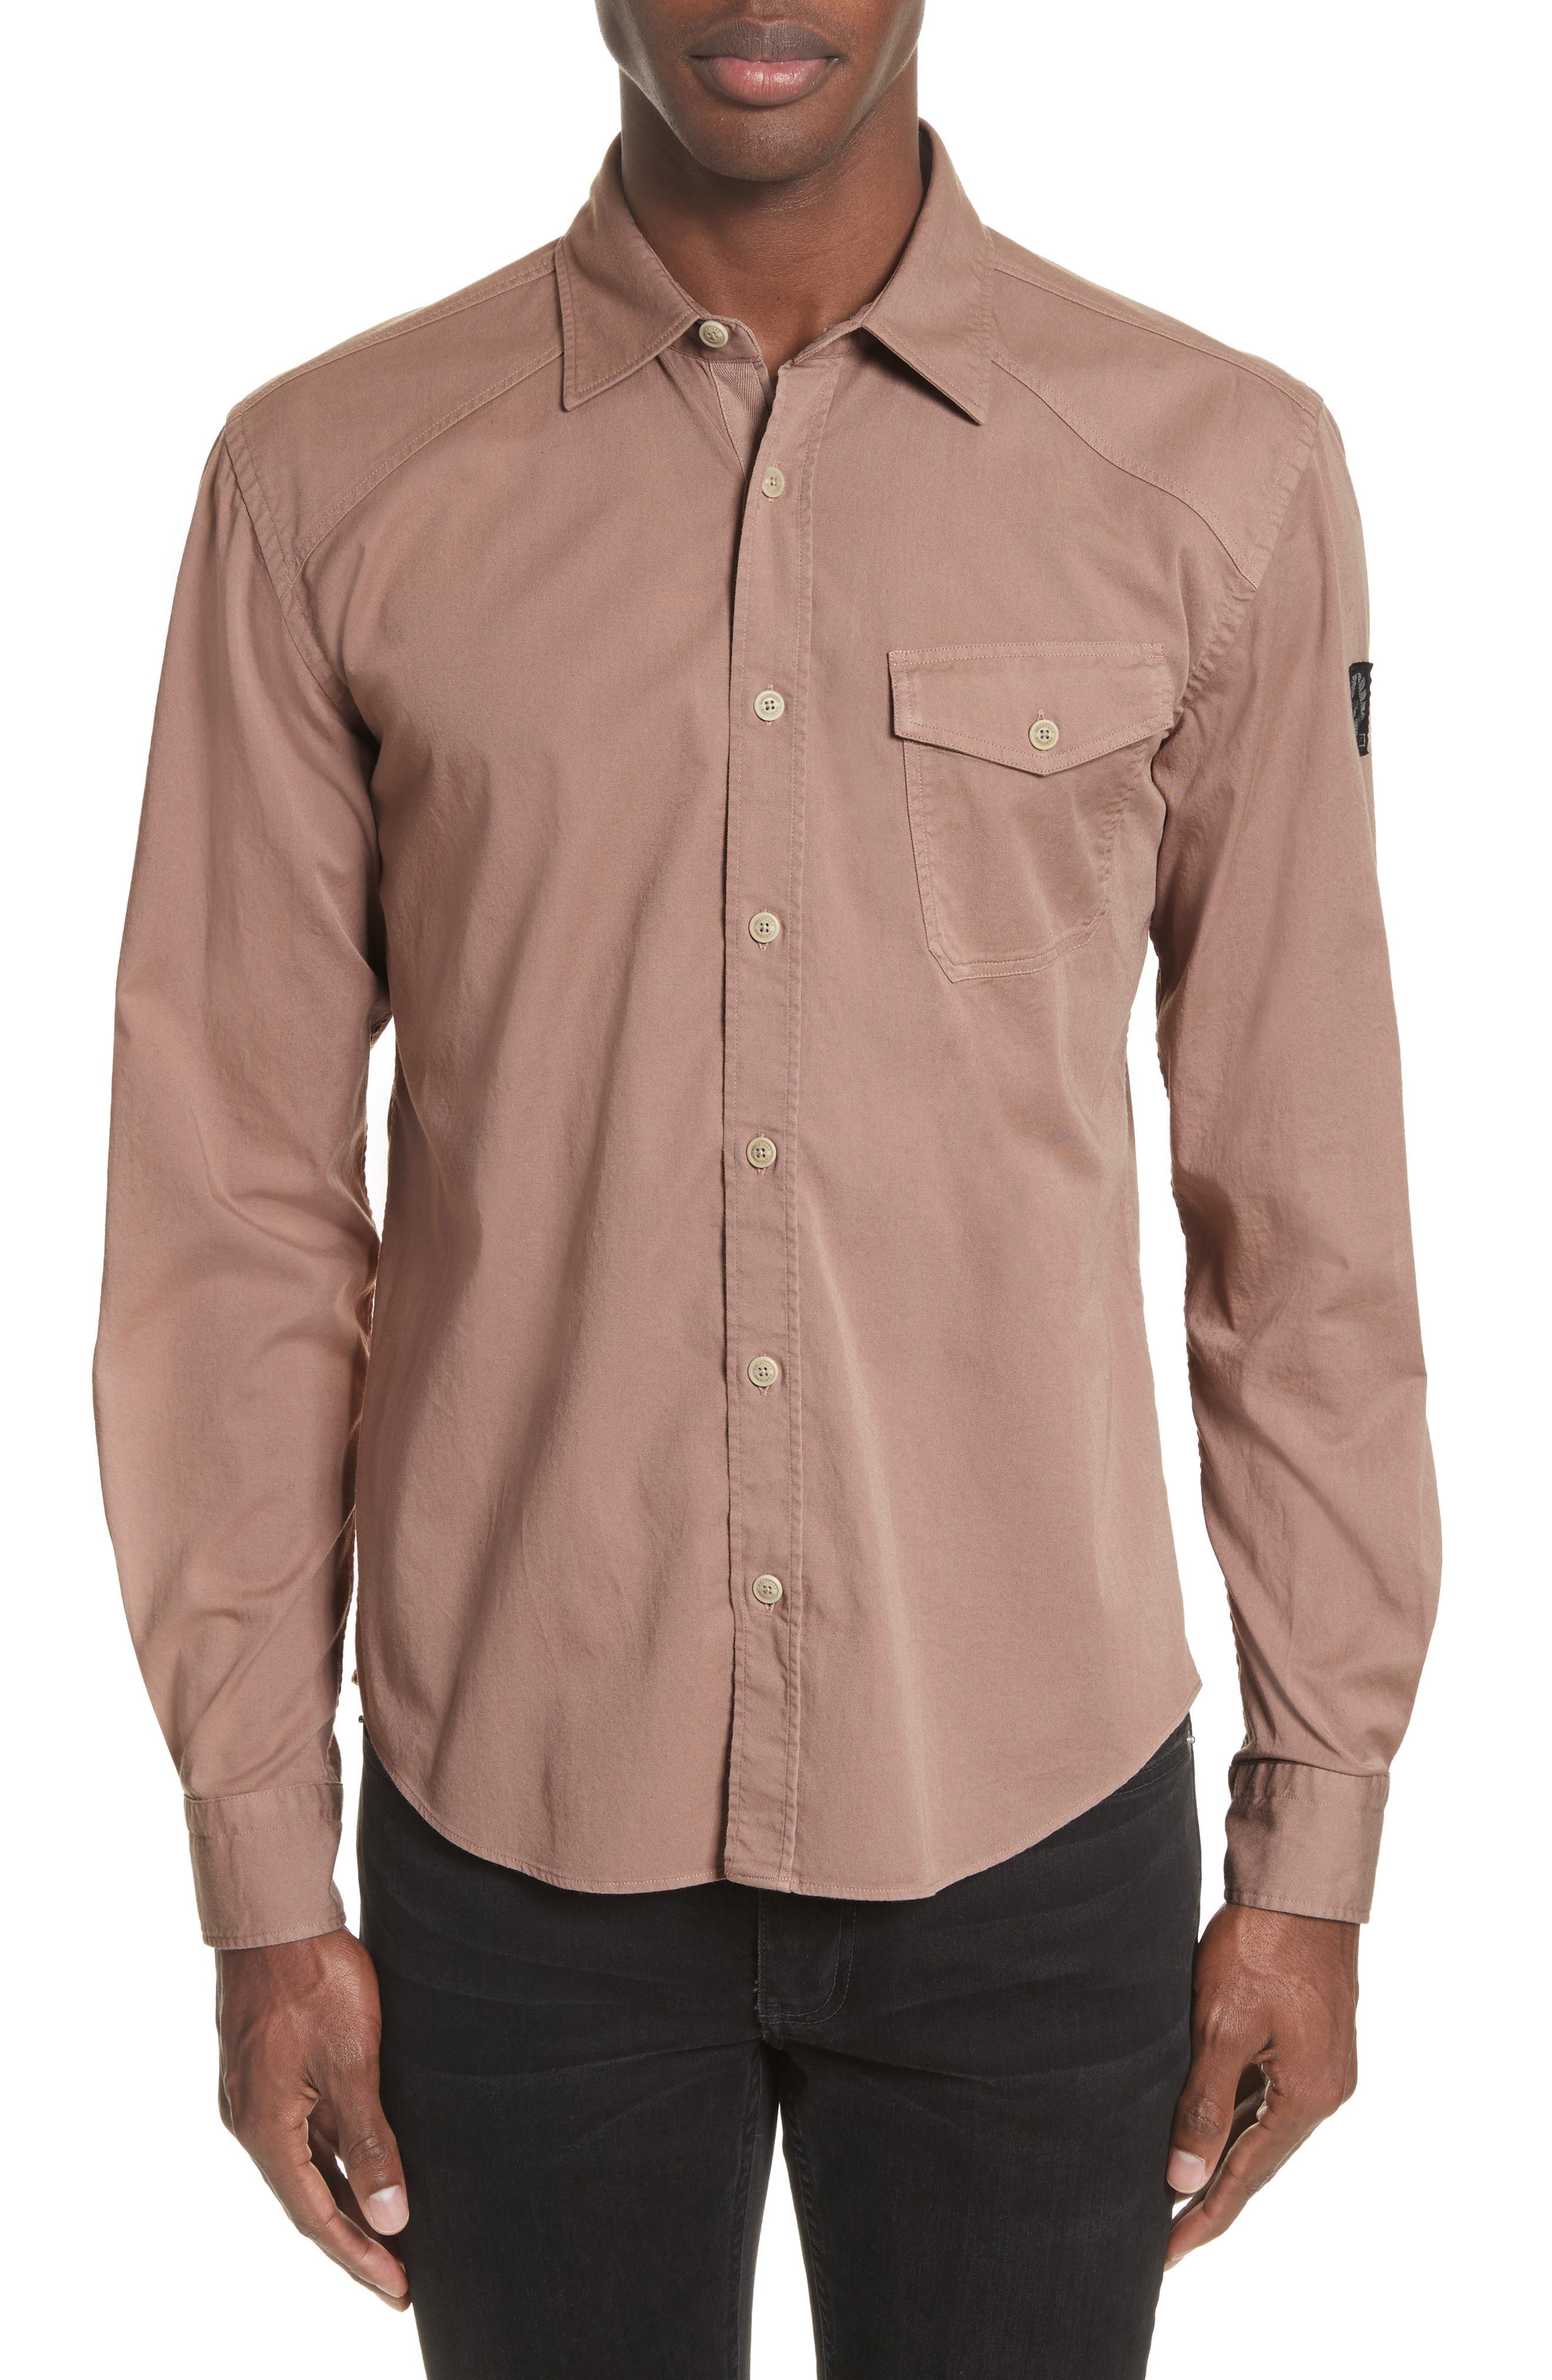 Steadway Extra Slim Fit Sport Shirt,                             Alternate thumbnail 18, color,